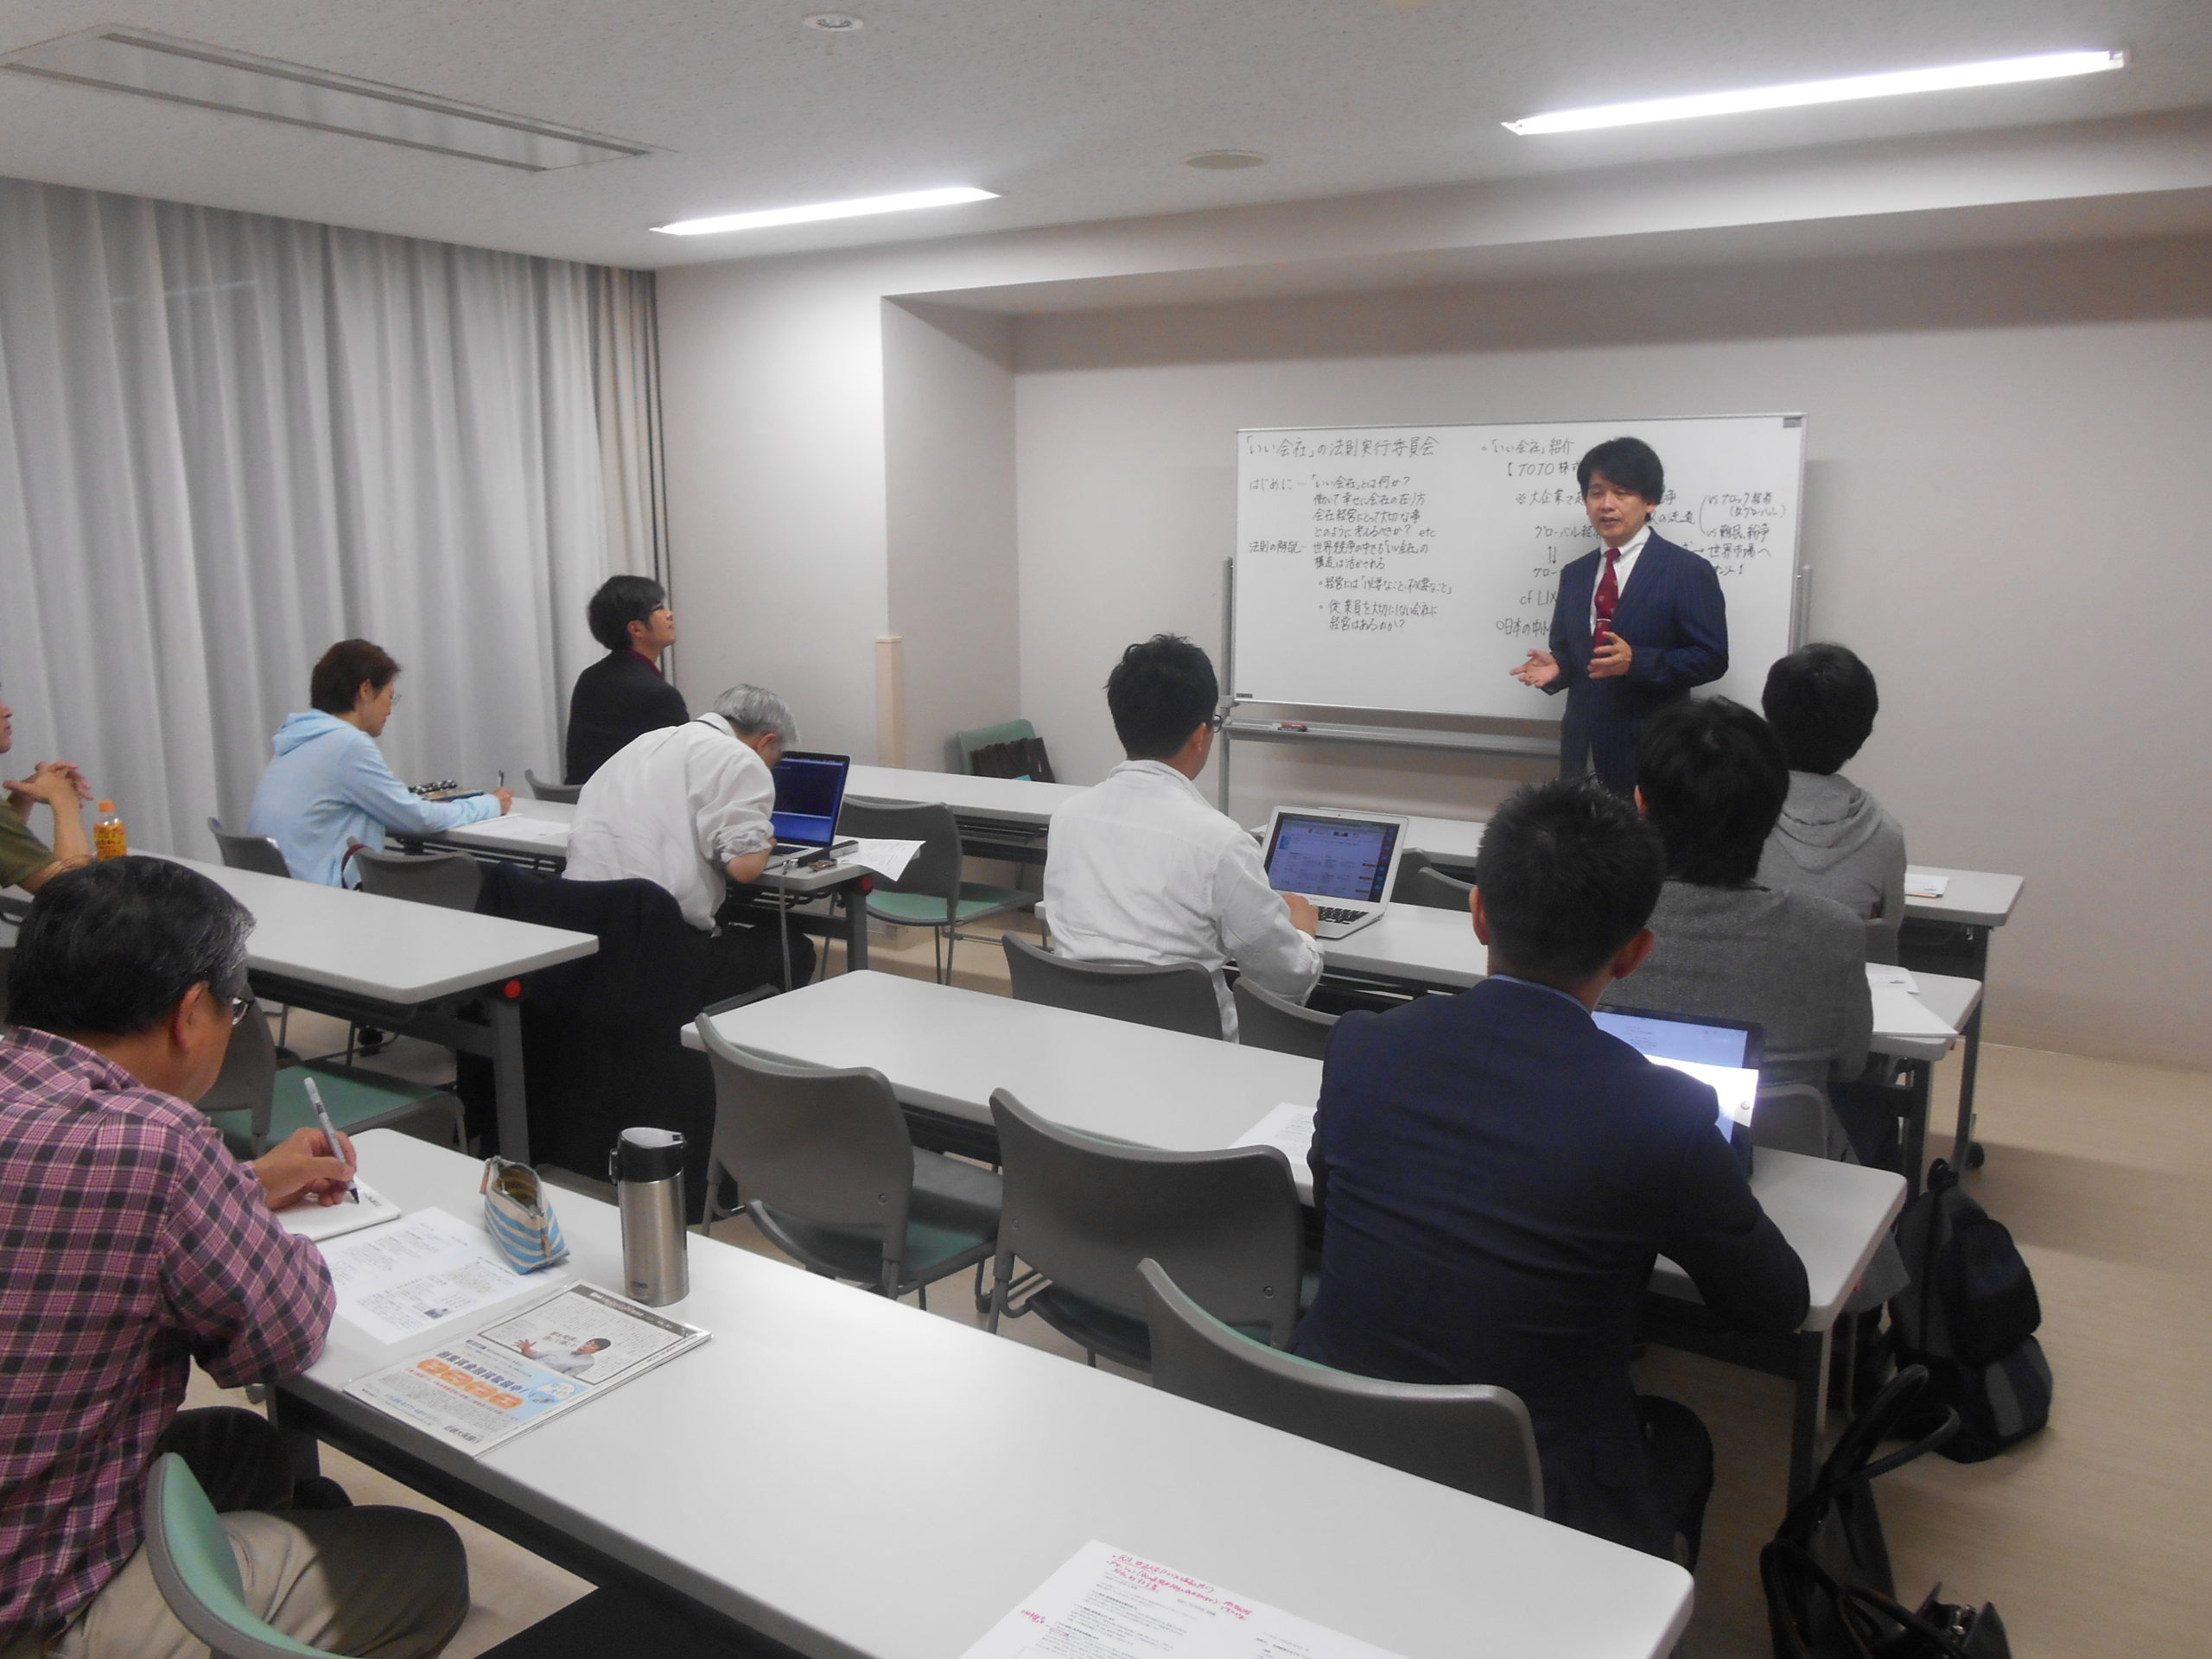 DSCN0137 143 scaled - 12月5日 第82回 いい会社の法則実行委員会 首都圏勉強会